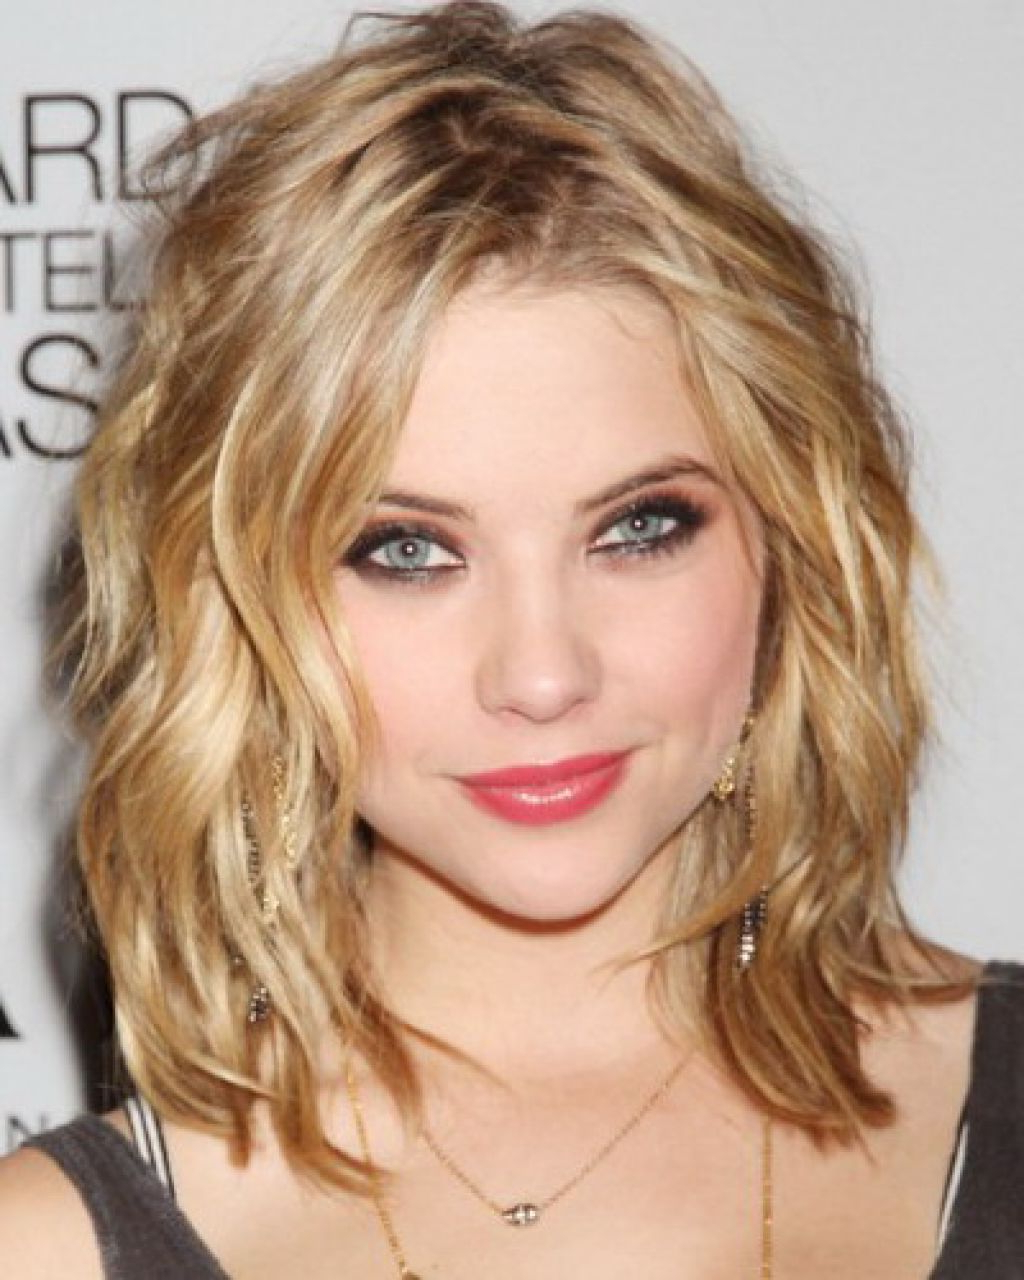 Hairstyle For Women: Shoulder Length Haircuts For Thin Straight With Best And Newest Medium Hairstyles For Thin Curly Hair (View 10 of 20)